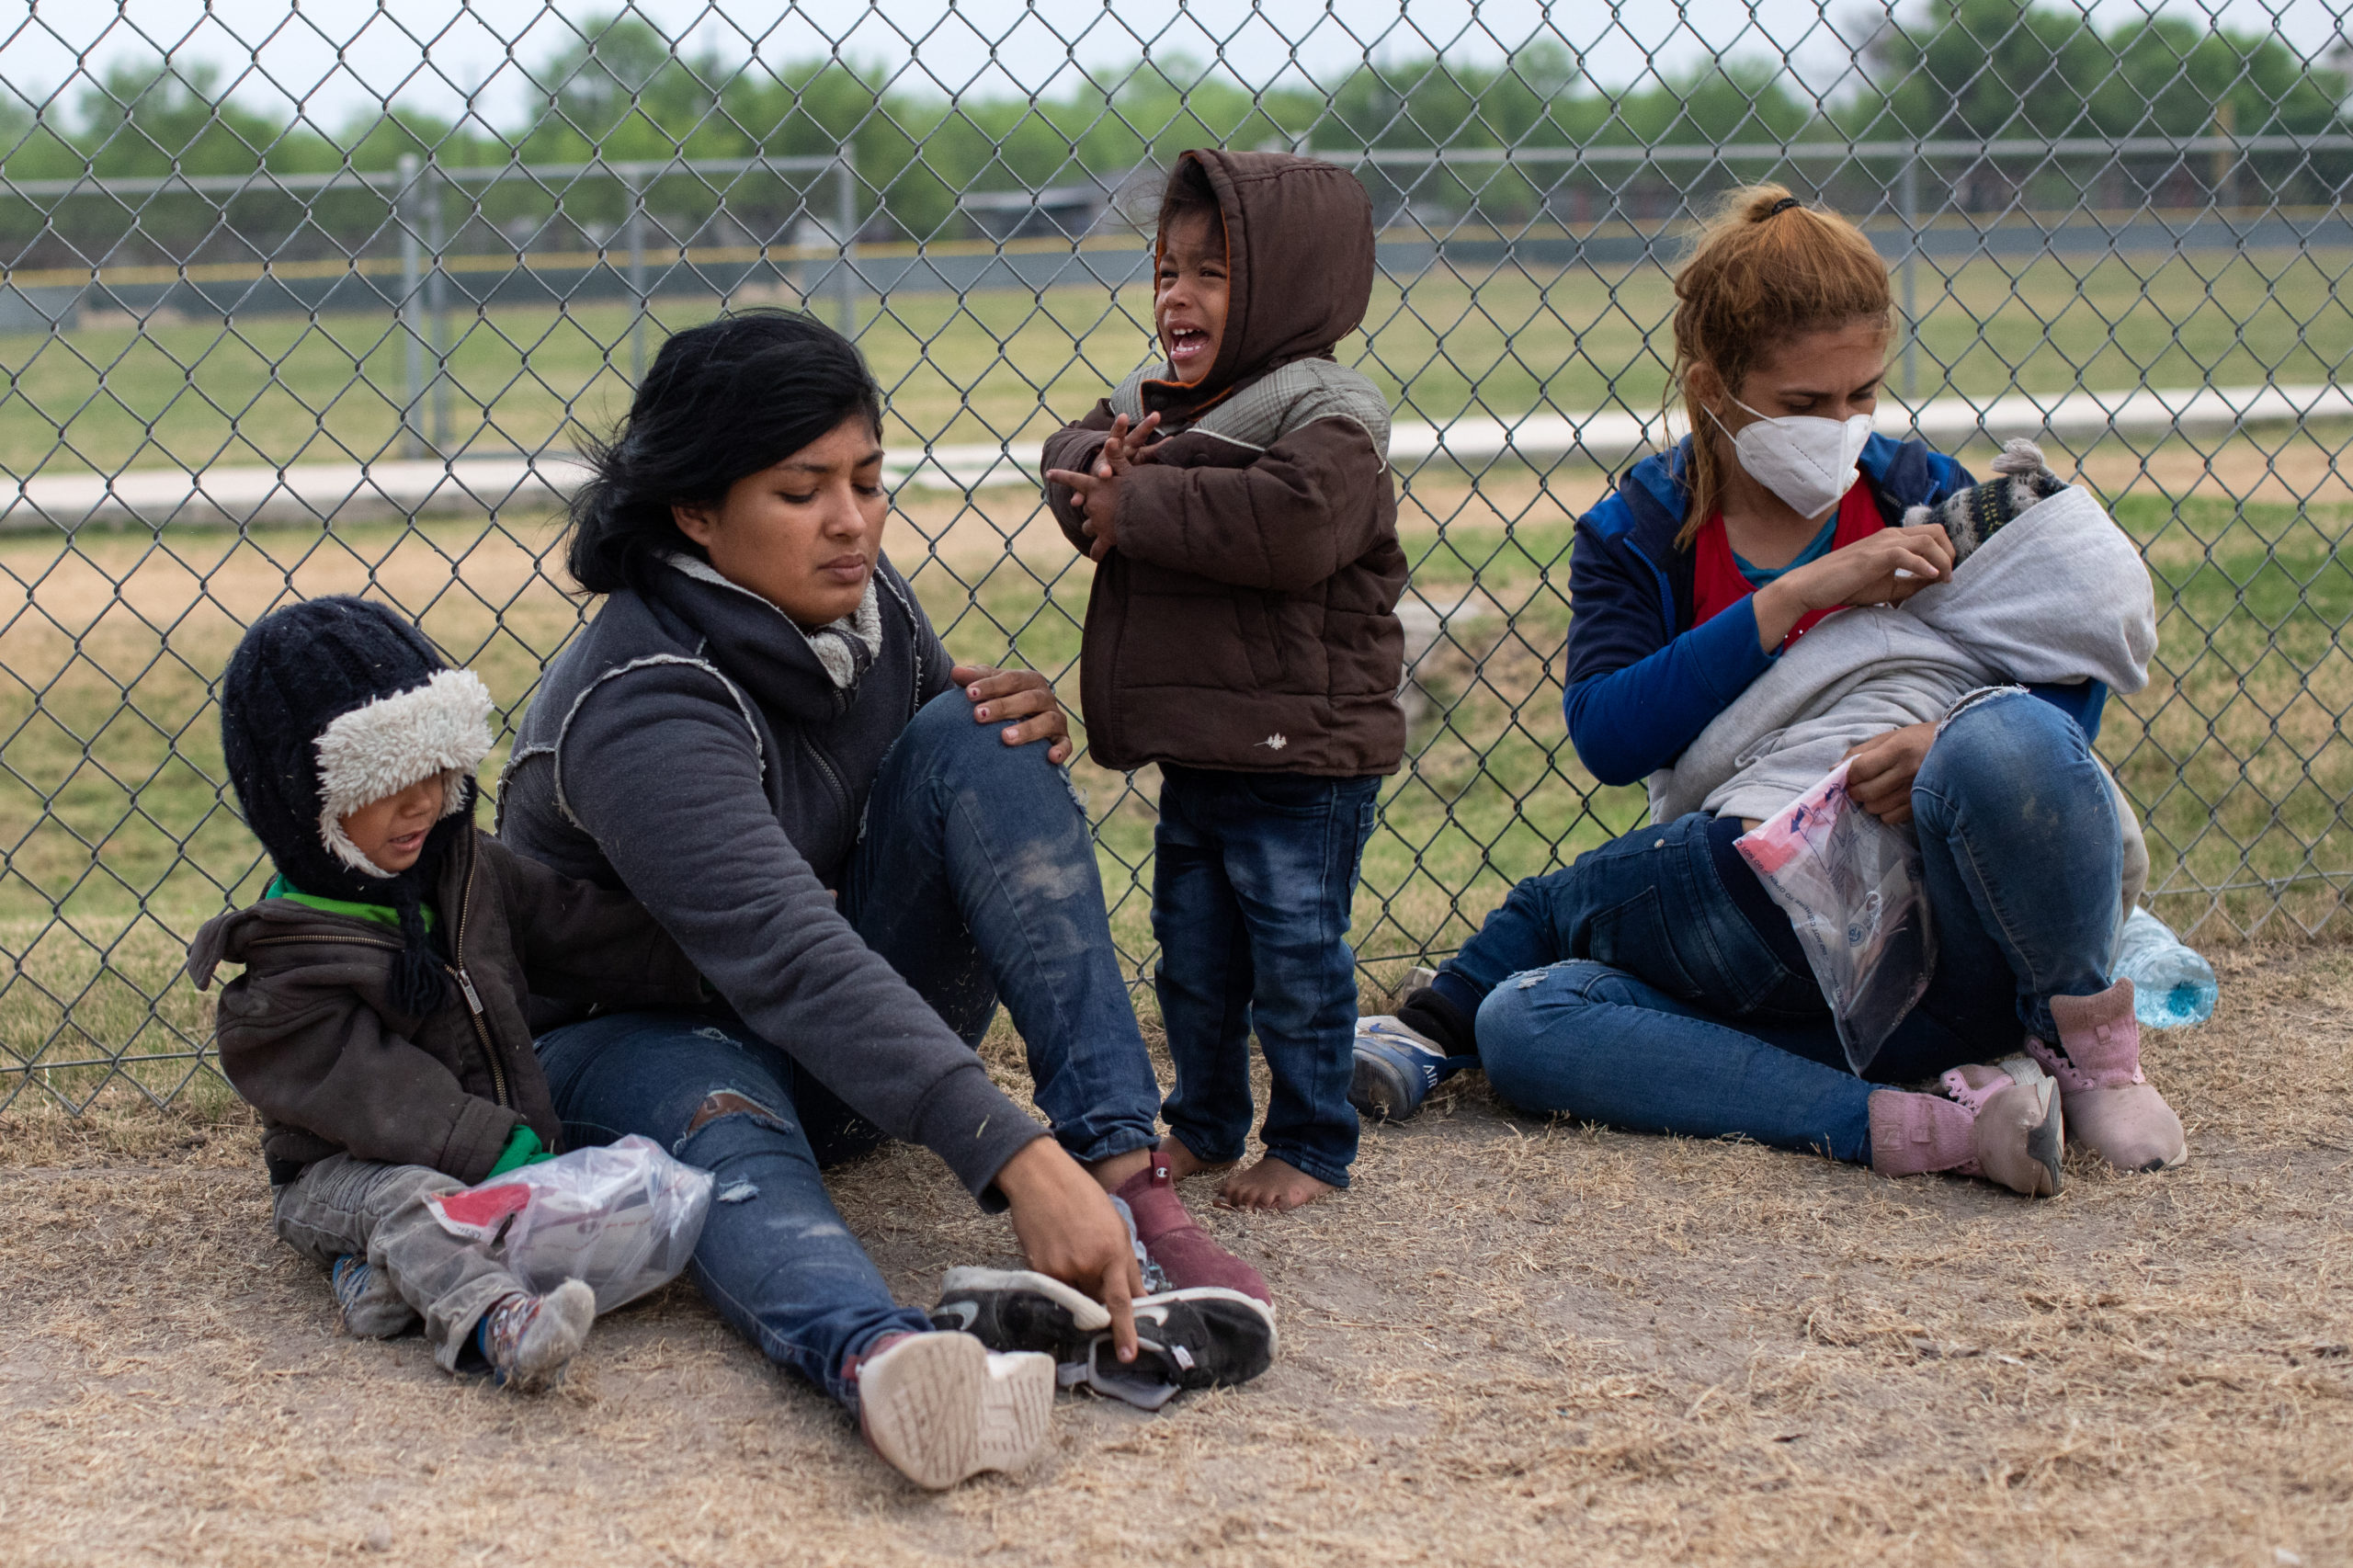 A child cried as illegal migrants waited on the grass near a public road as Customs and Border Protection officials worked to process and transport them to other facilities in La Joya, Texas on March 27, 2021. (Kaylee Greenlee - Daily Caller News Foundation)